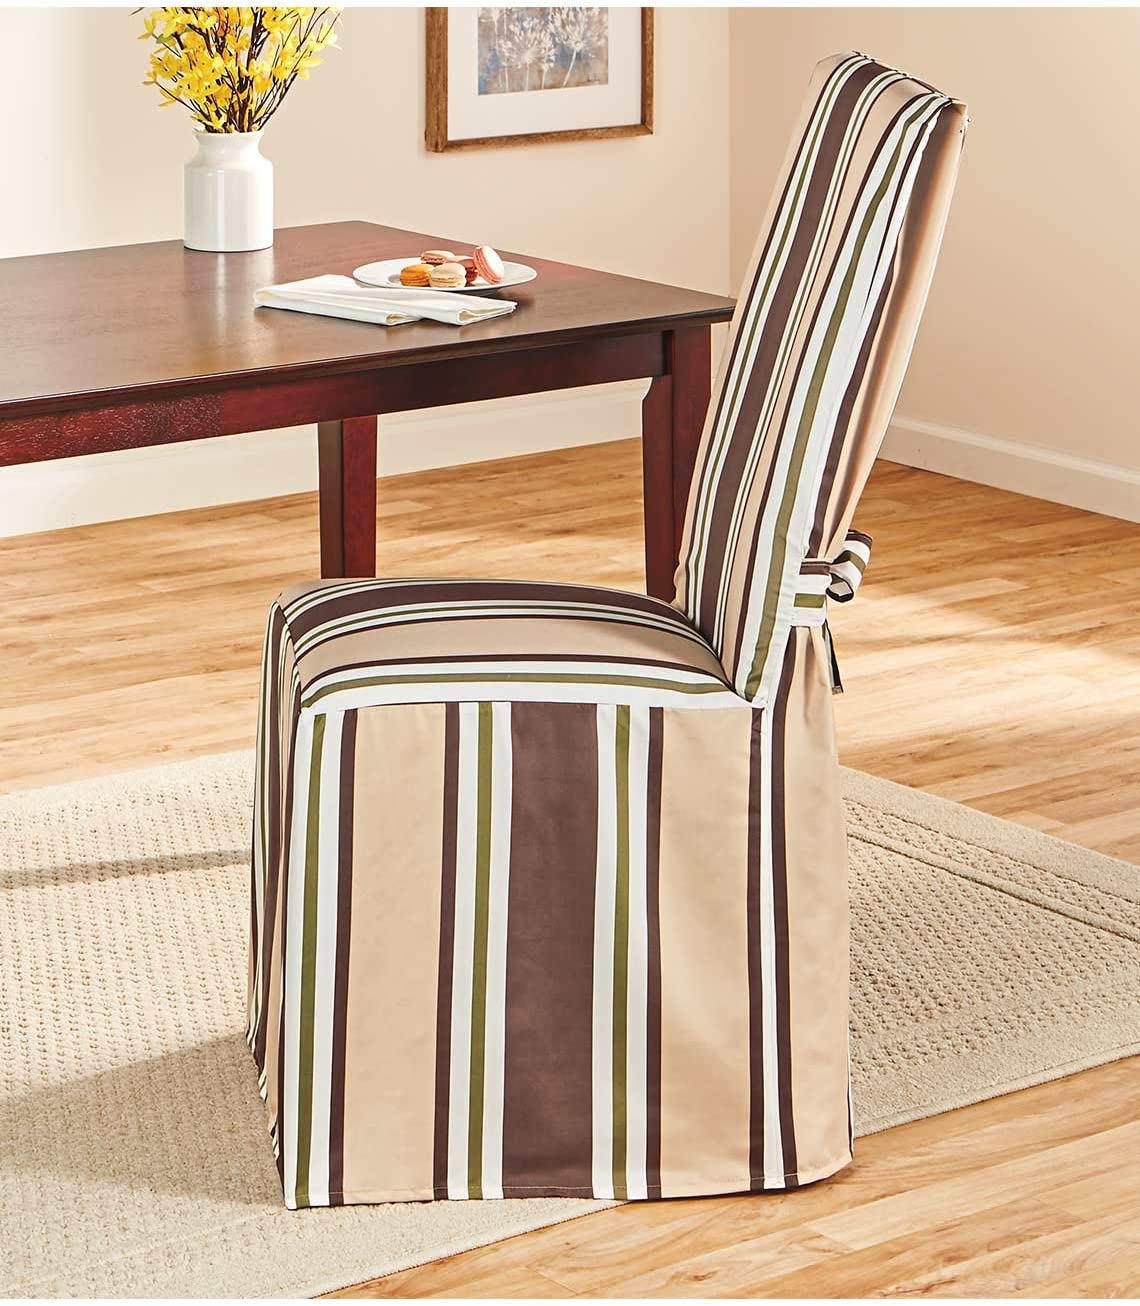 San Francisco Mall Carol Wright Gifts Ethan Super intense SALE Striped Oliv Covers Chair Color Dining